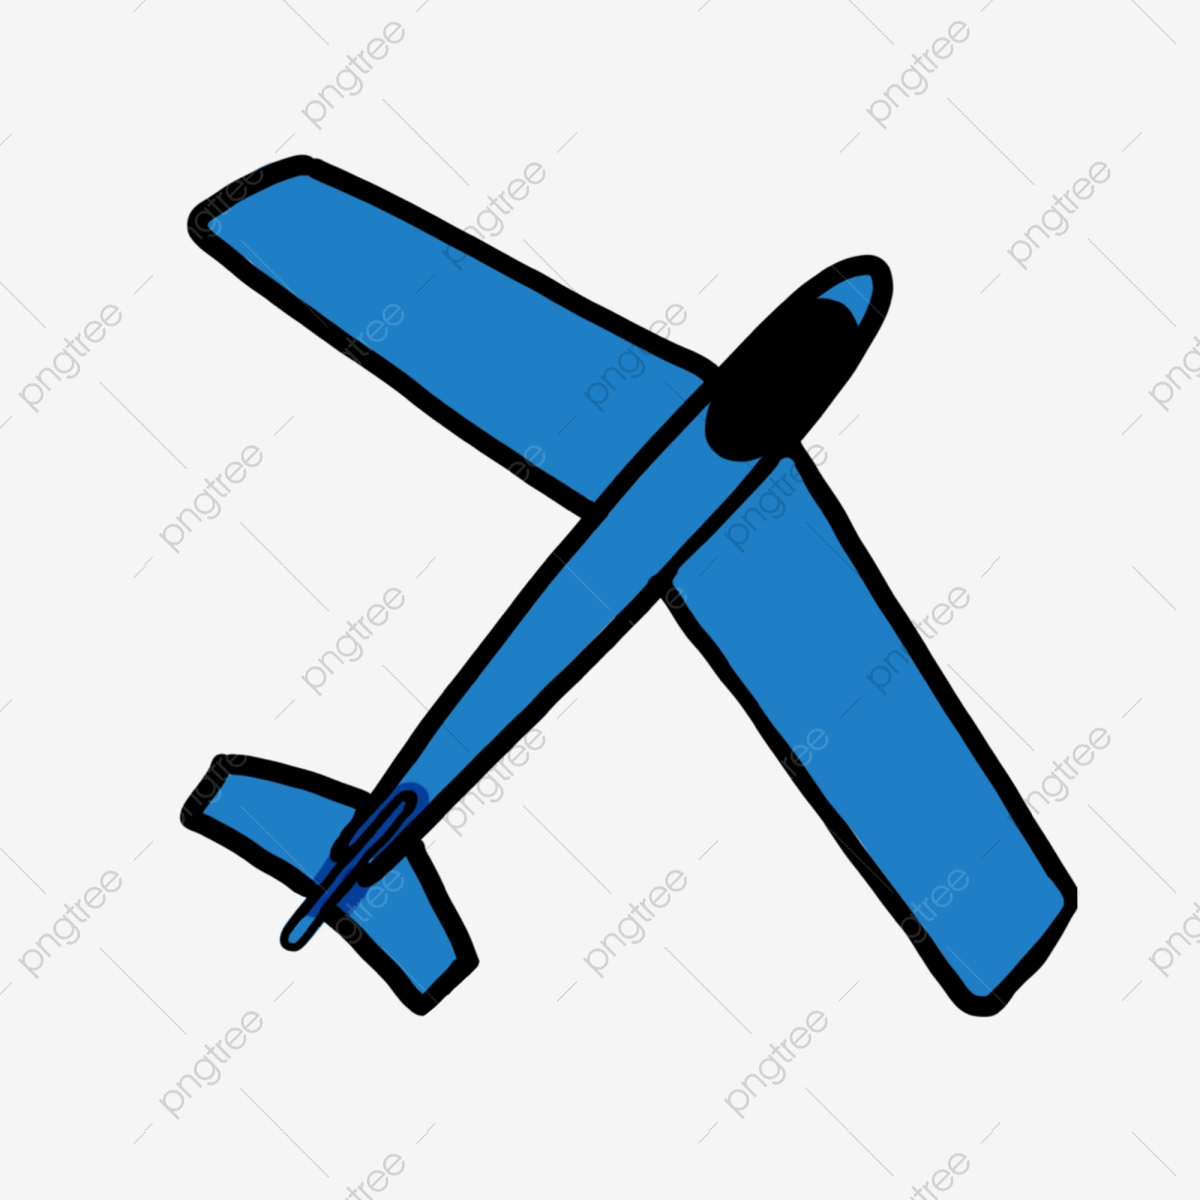 Cartoon Kids Toys Cartoon Hand Painted Color Childrens Drawing Aircraft Png Transparent Clipart Image And Psd File For Free Download